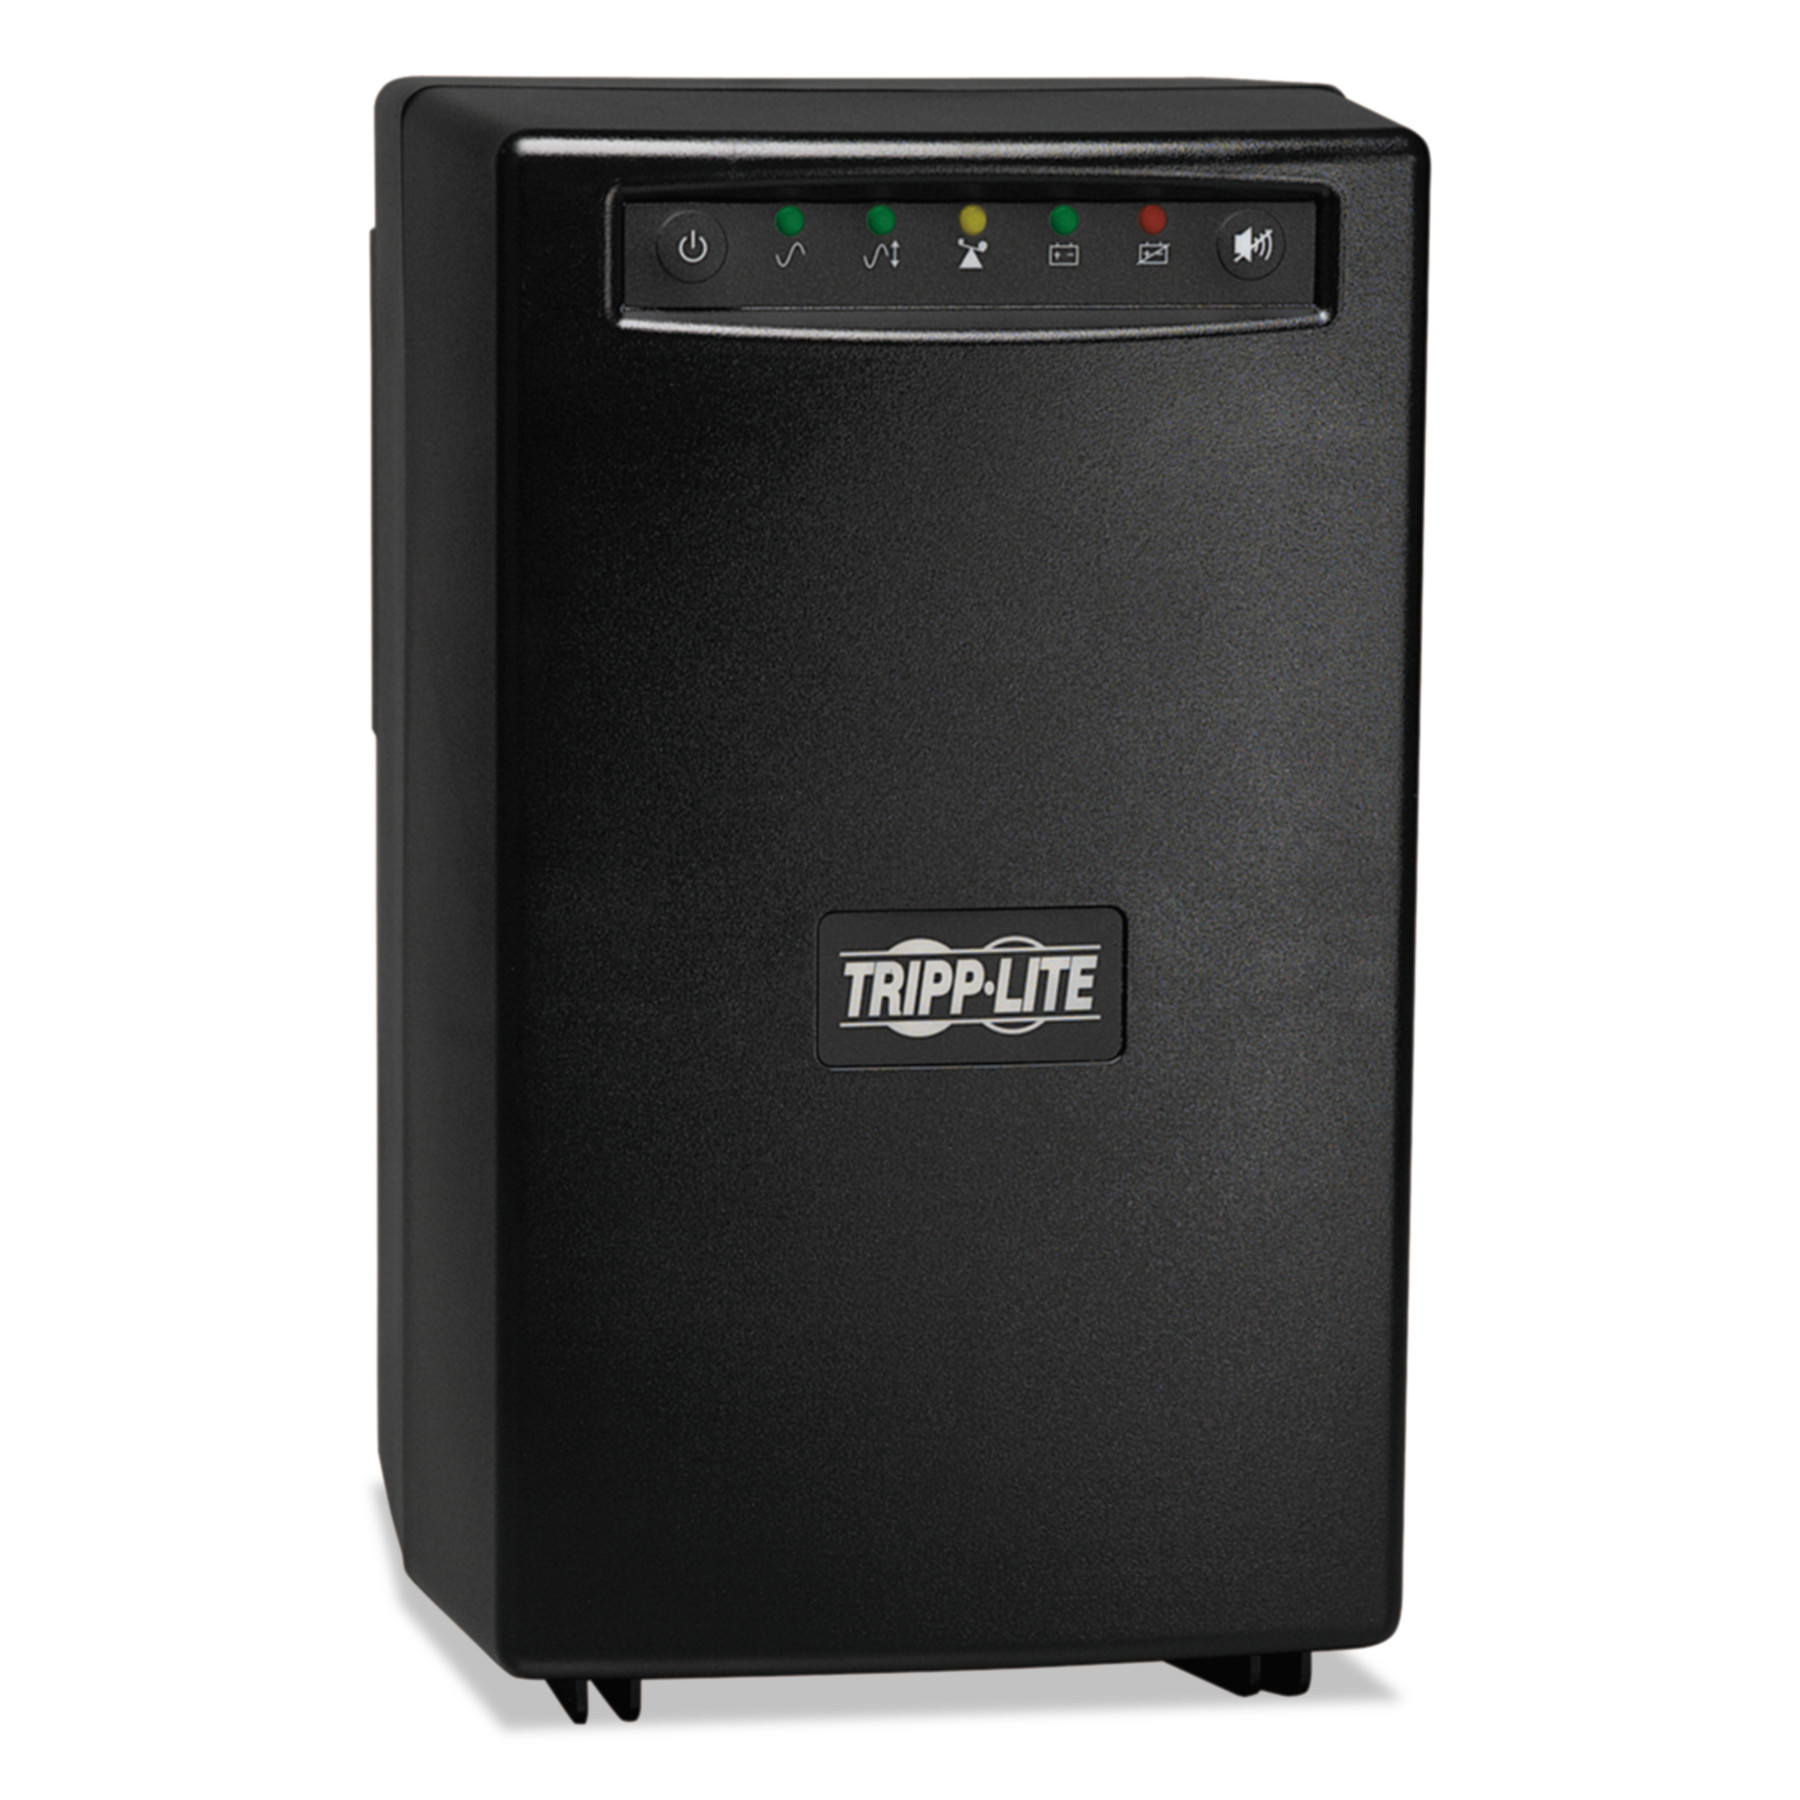 Tripp Lite UPS 1500VA 940W Battery Back Up Tower AVR 120V RJ11 RJ45 by Tripp Lite